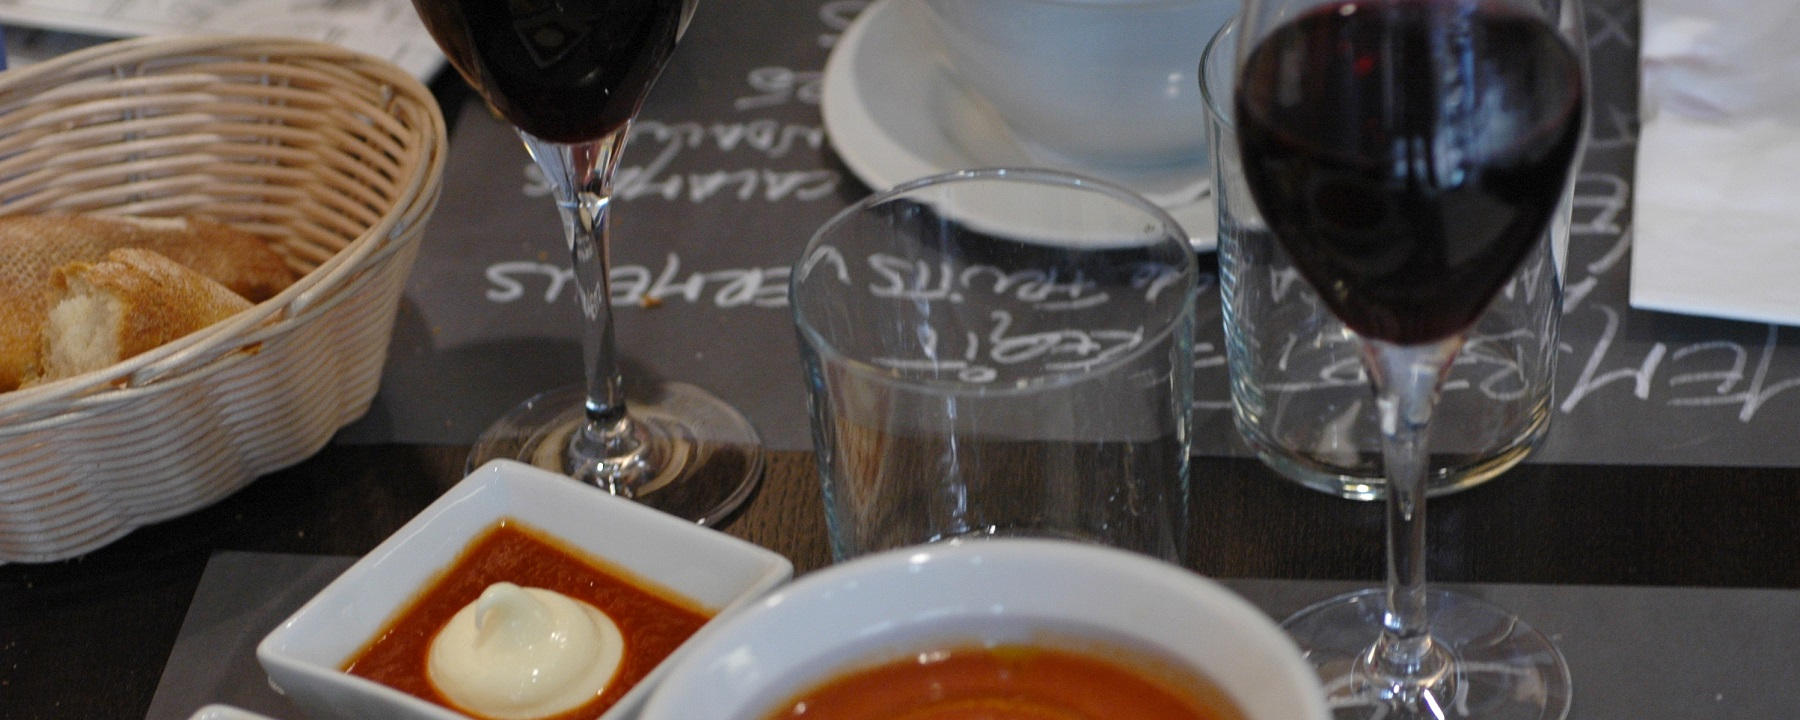 Wine, Mama's Cookin' or Organic? What Makes Lunch Special in Spain, India and America!